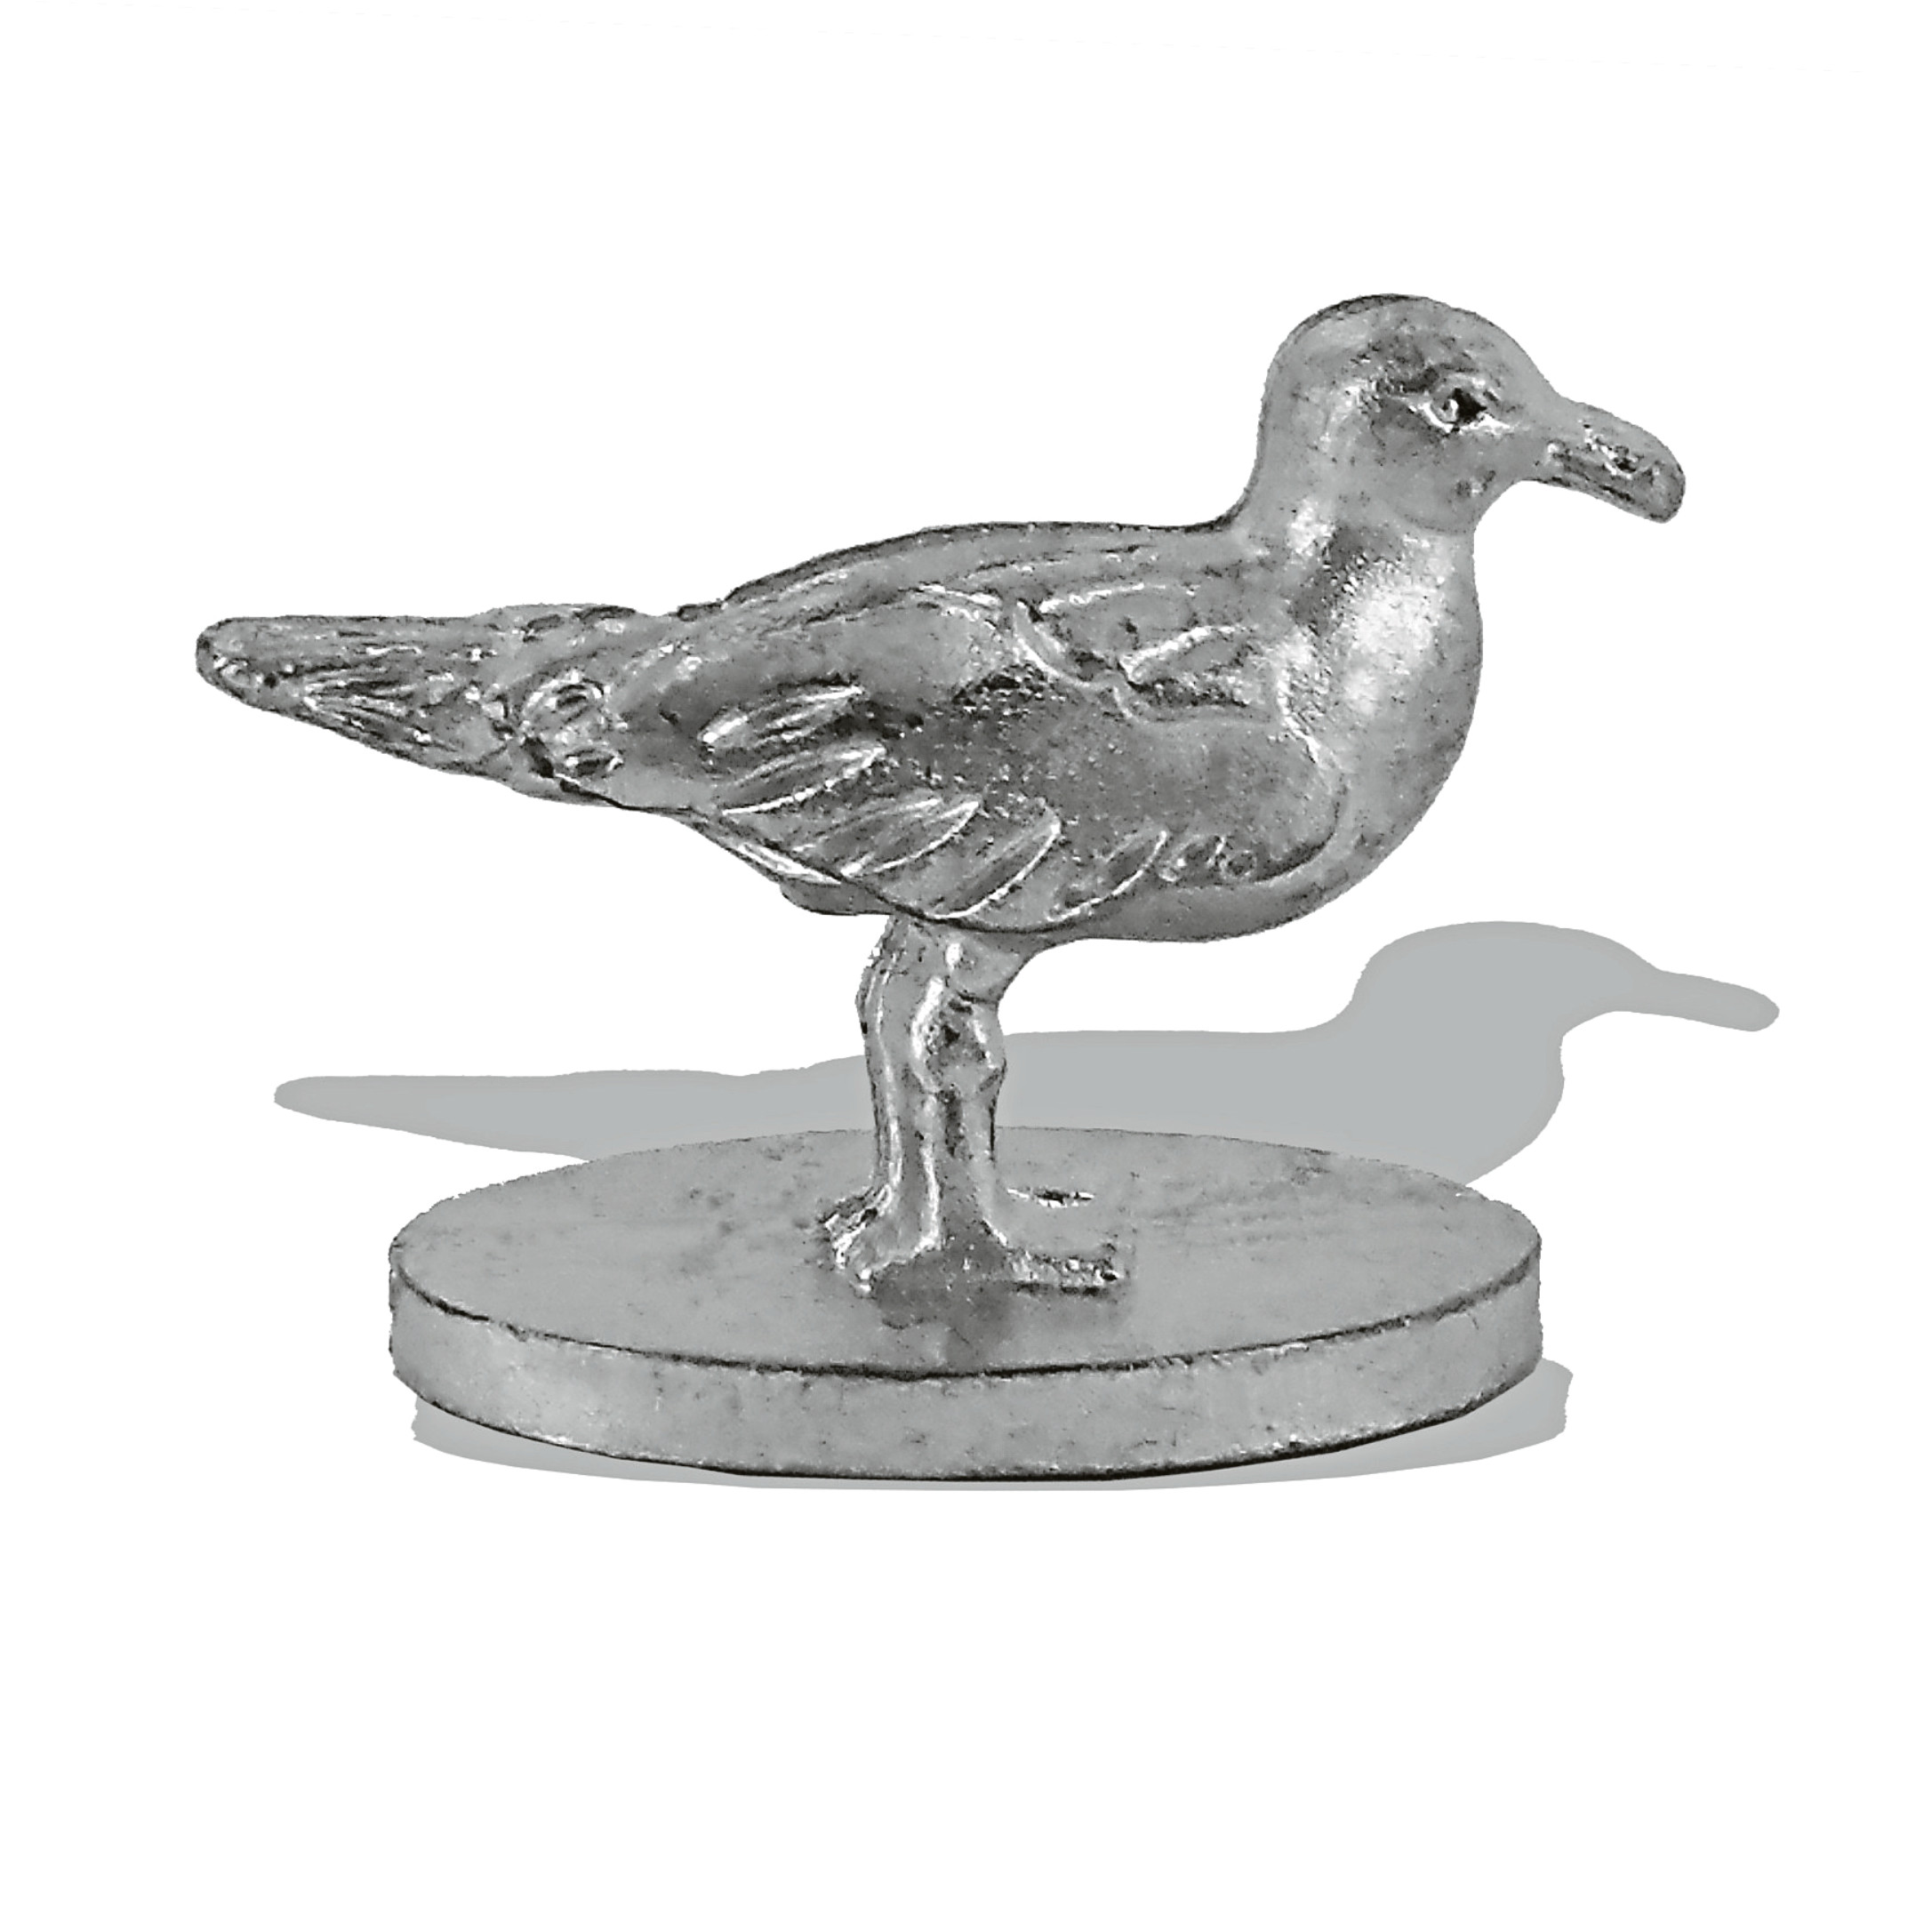 The seagull token designed for  Aberdeen Monopoly